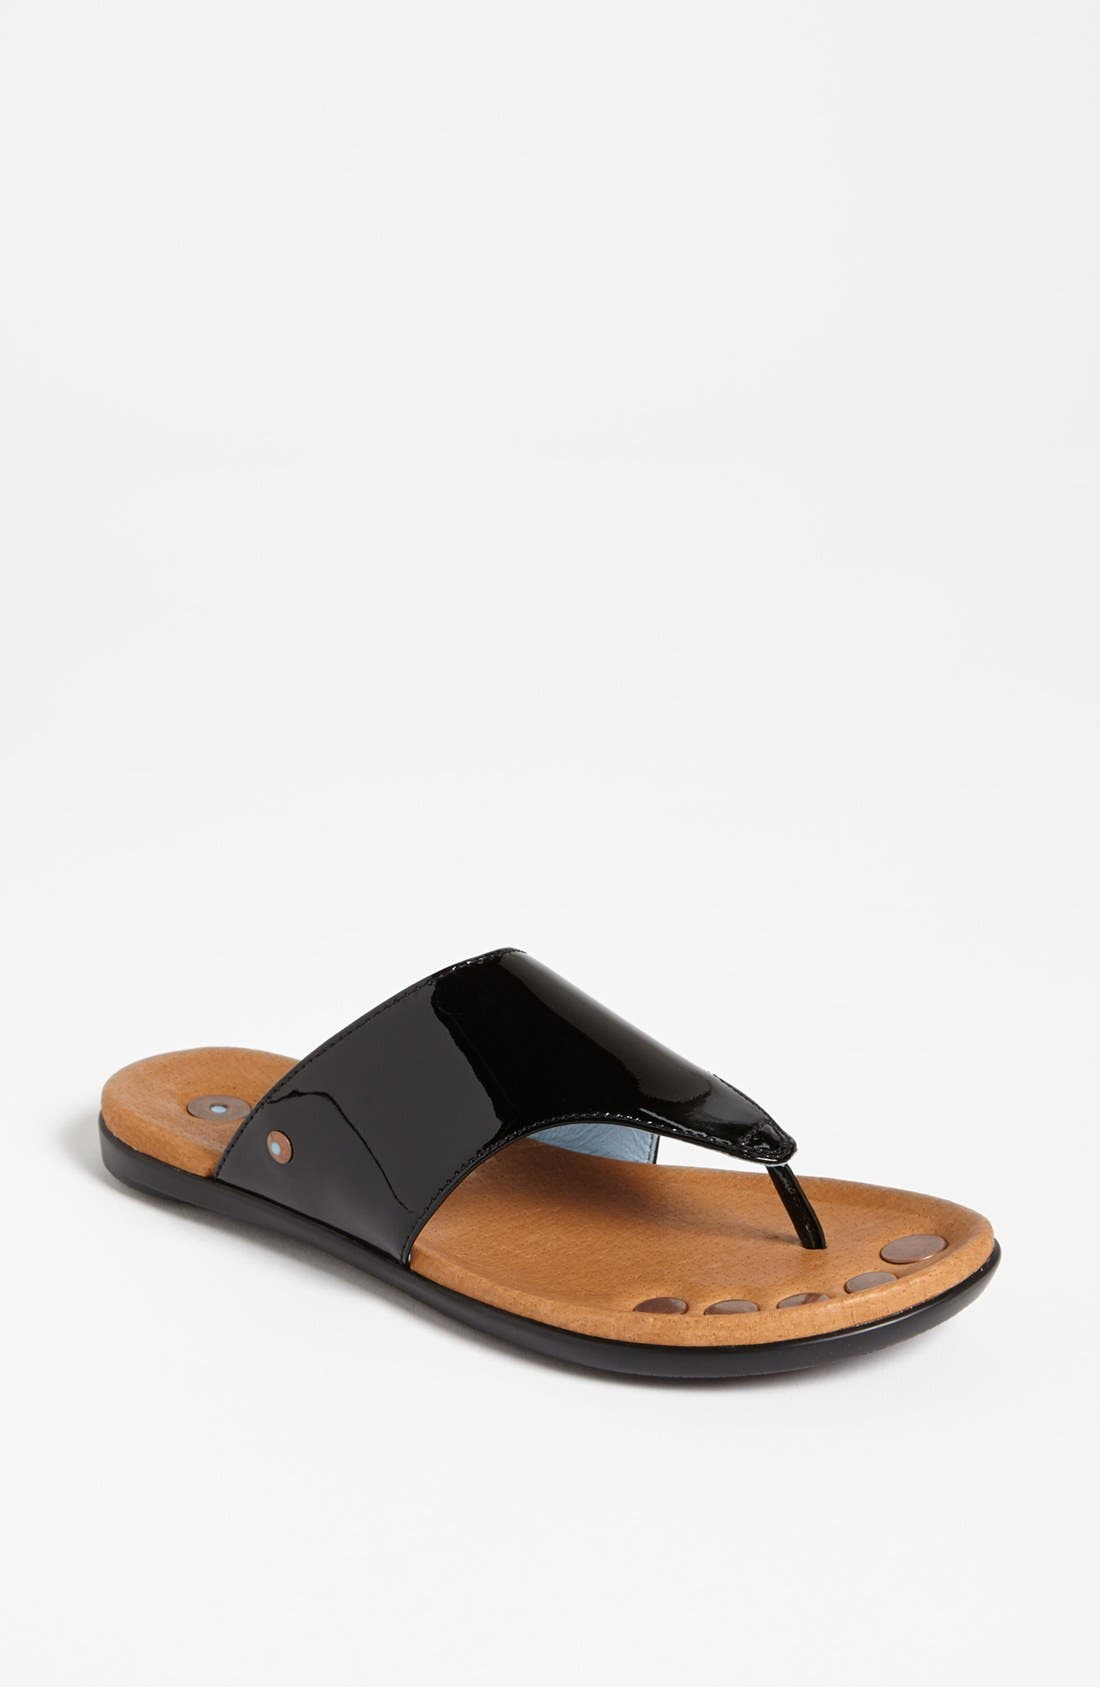 Alternate Image 1 Selected - Juil 'Brio' Sandal